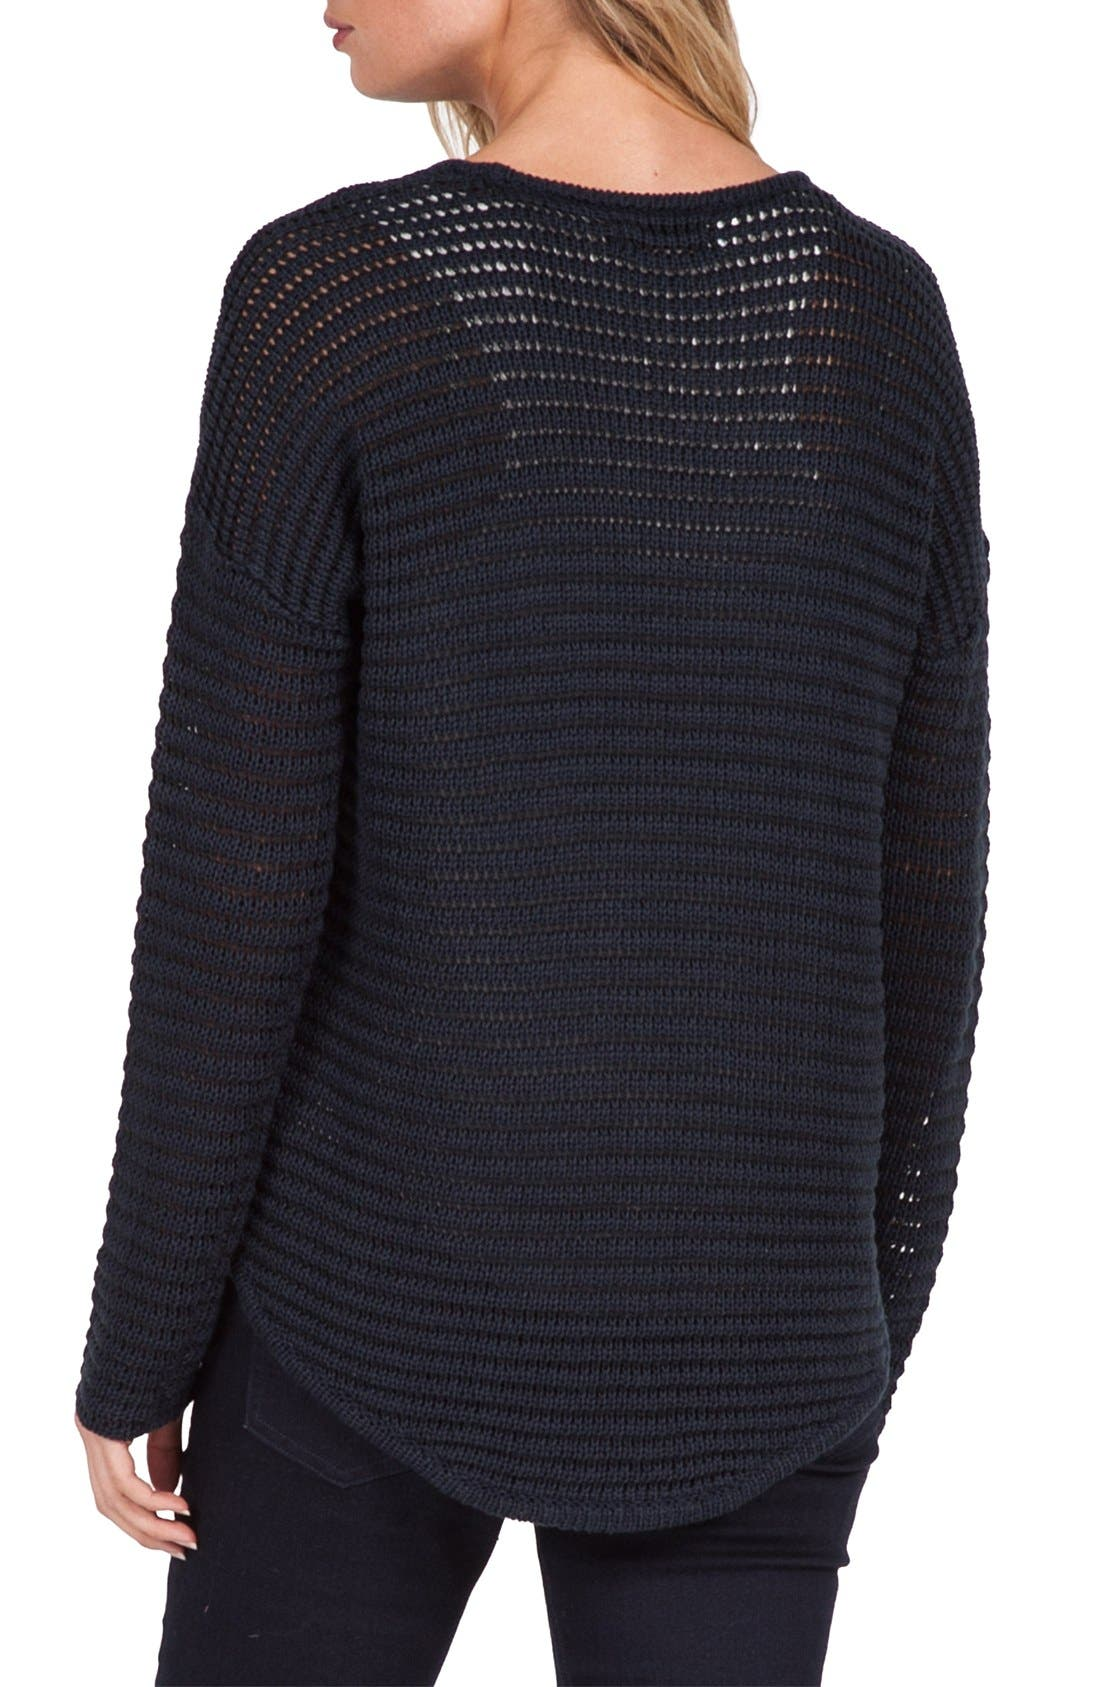 VOLCOM, Hold on Tight Crewneck Pullover, Alternate thumbnail 2, color, 001